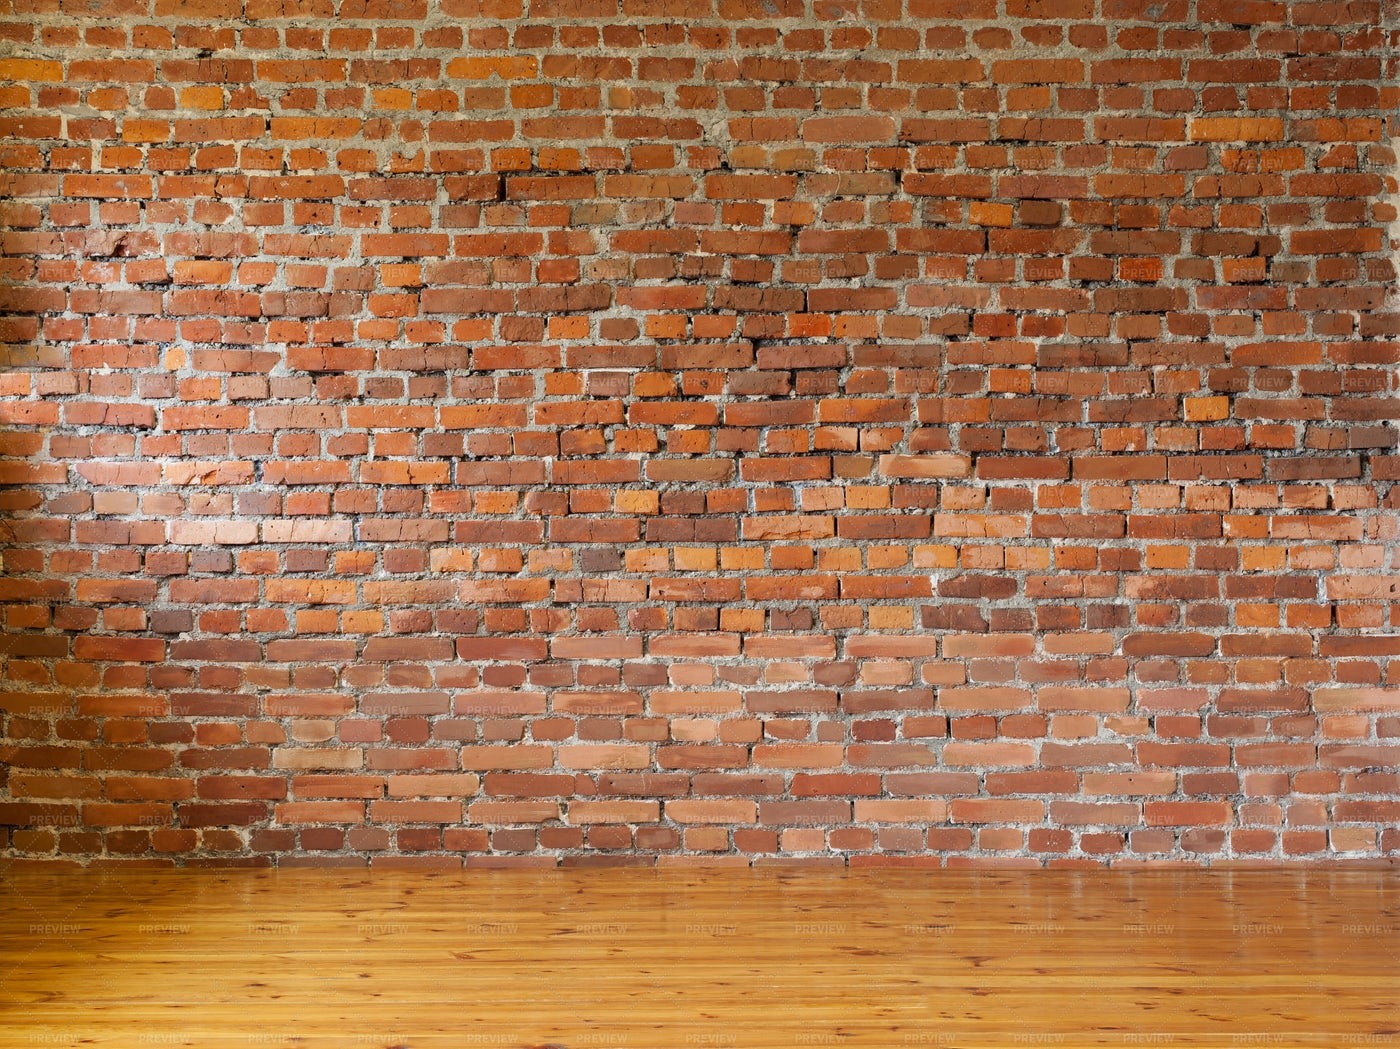 Empty interior with red brick wall: Stock Photos